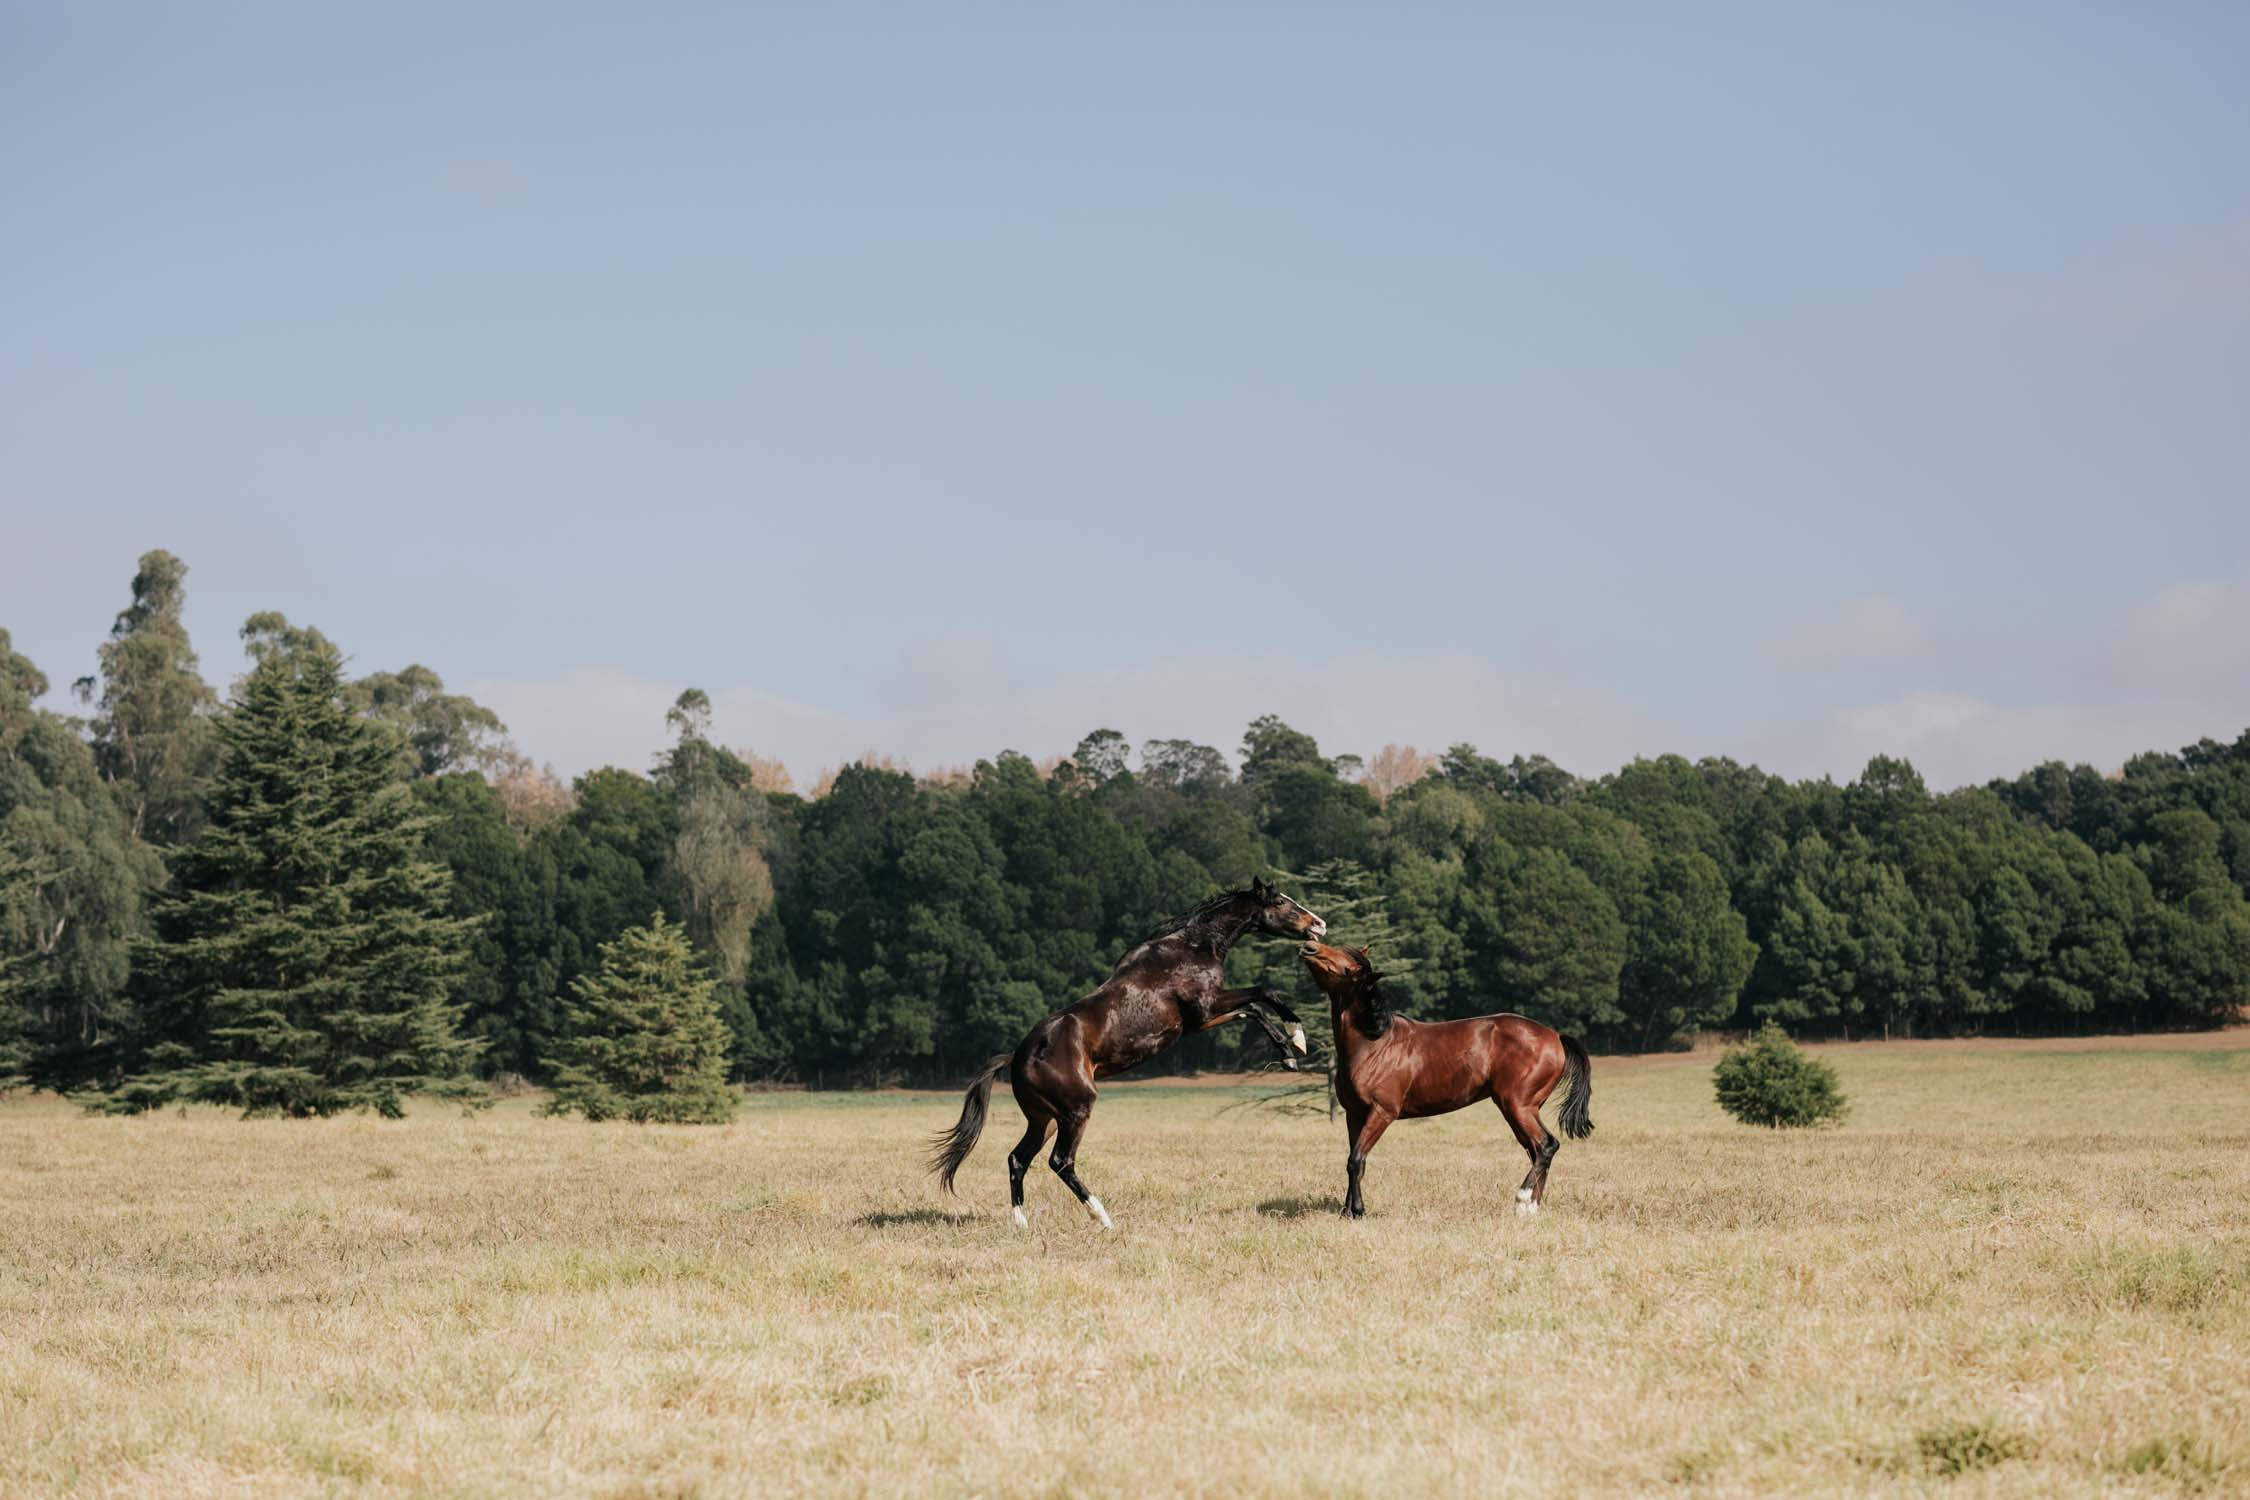 Two brown horses playing or fighting in a field with trees behind them and a blue sky above them.